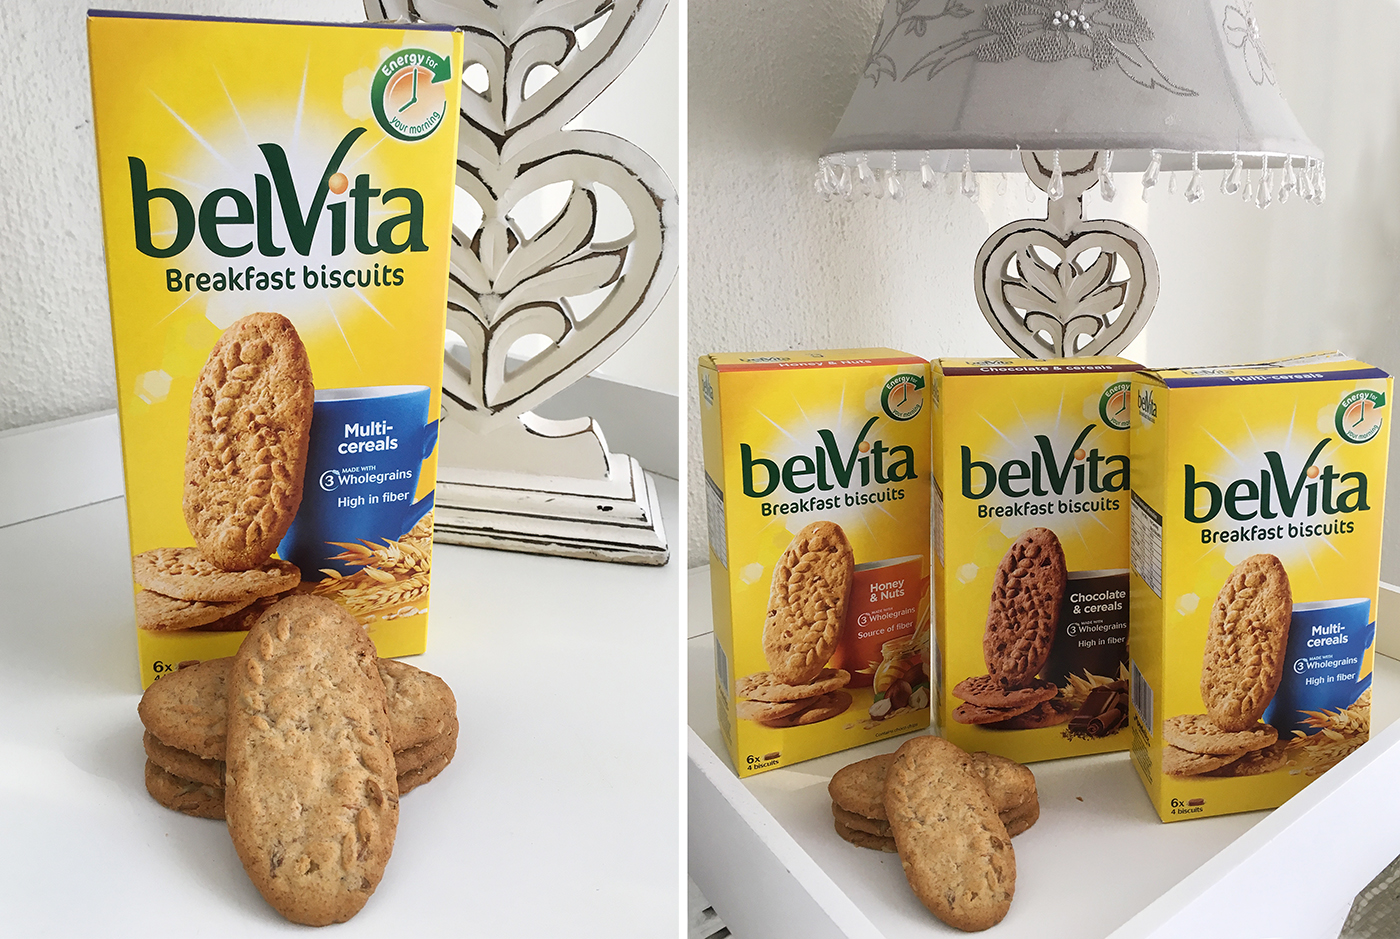 belVita Breakfast Biscuits (photographed with my iPhone 6s)